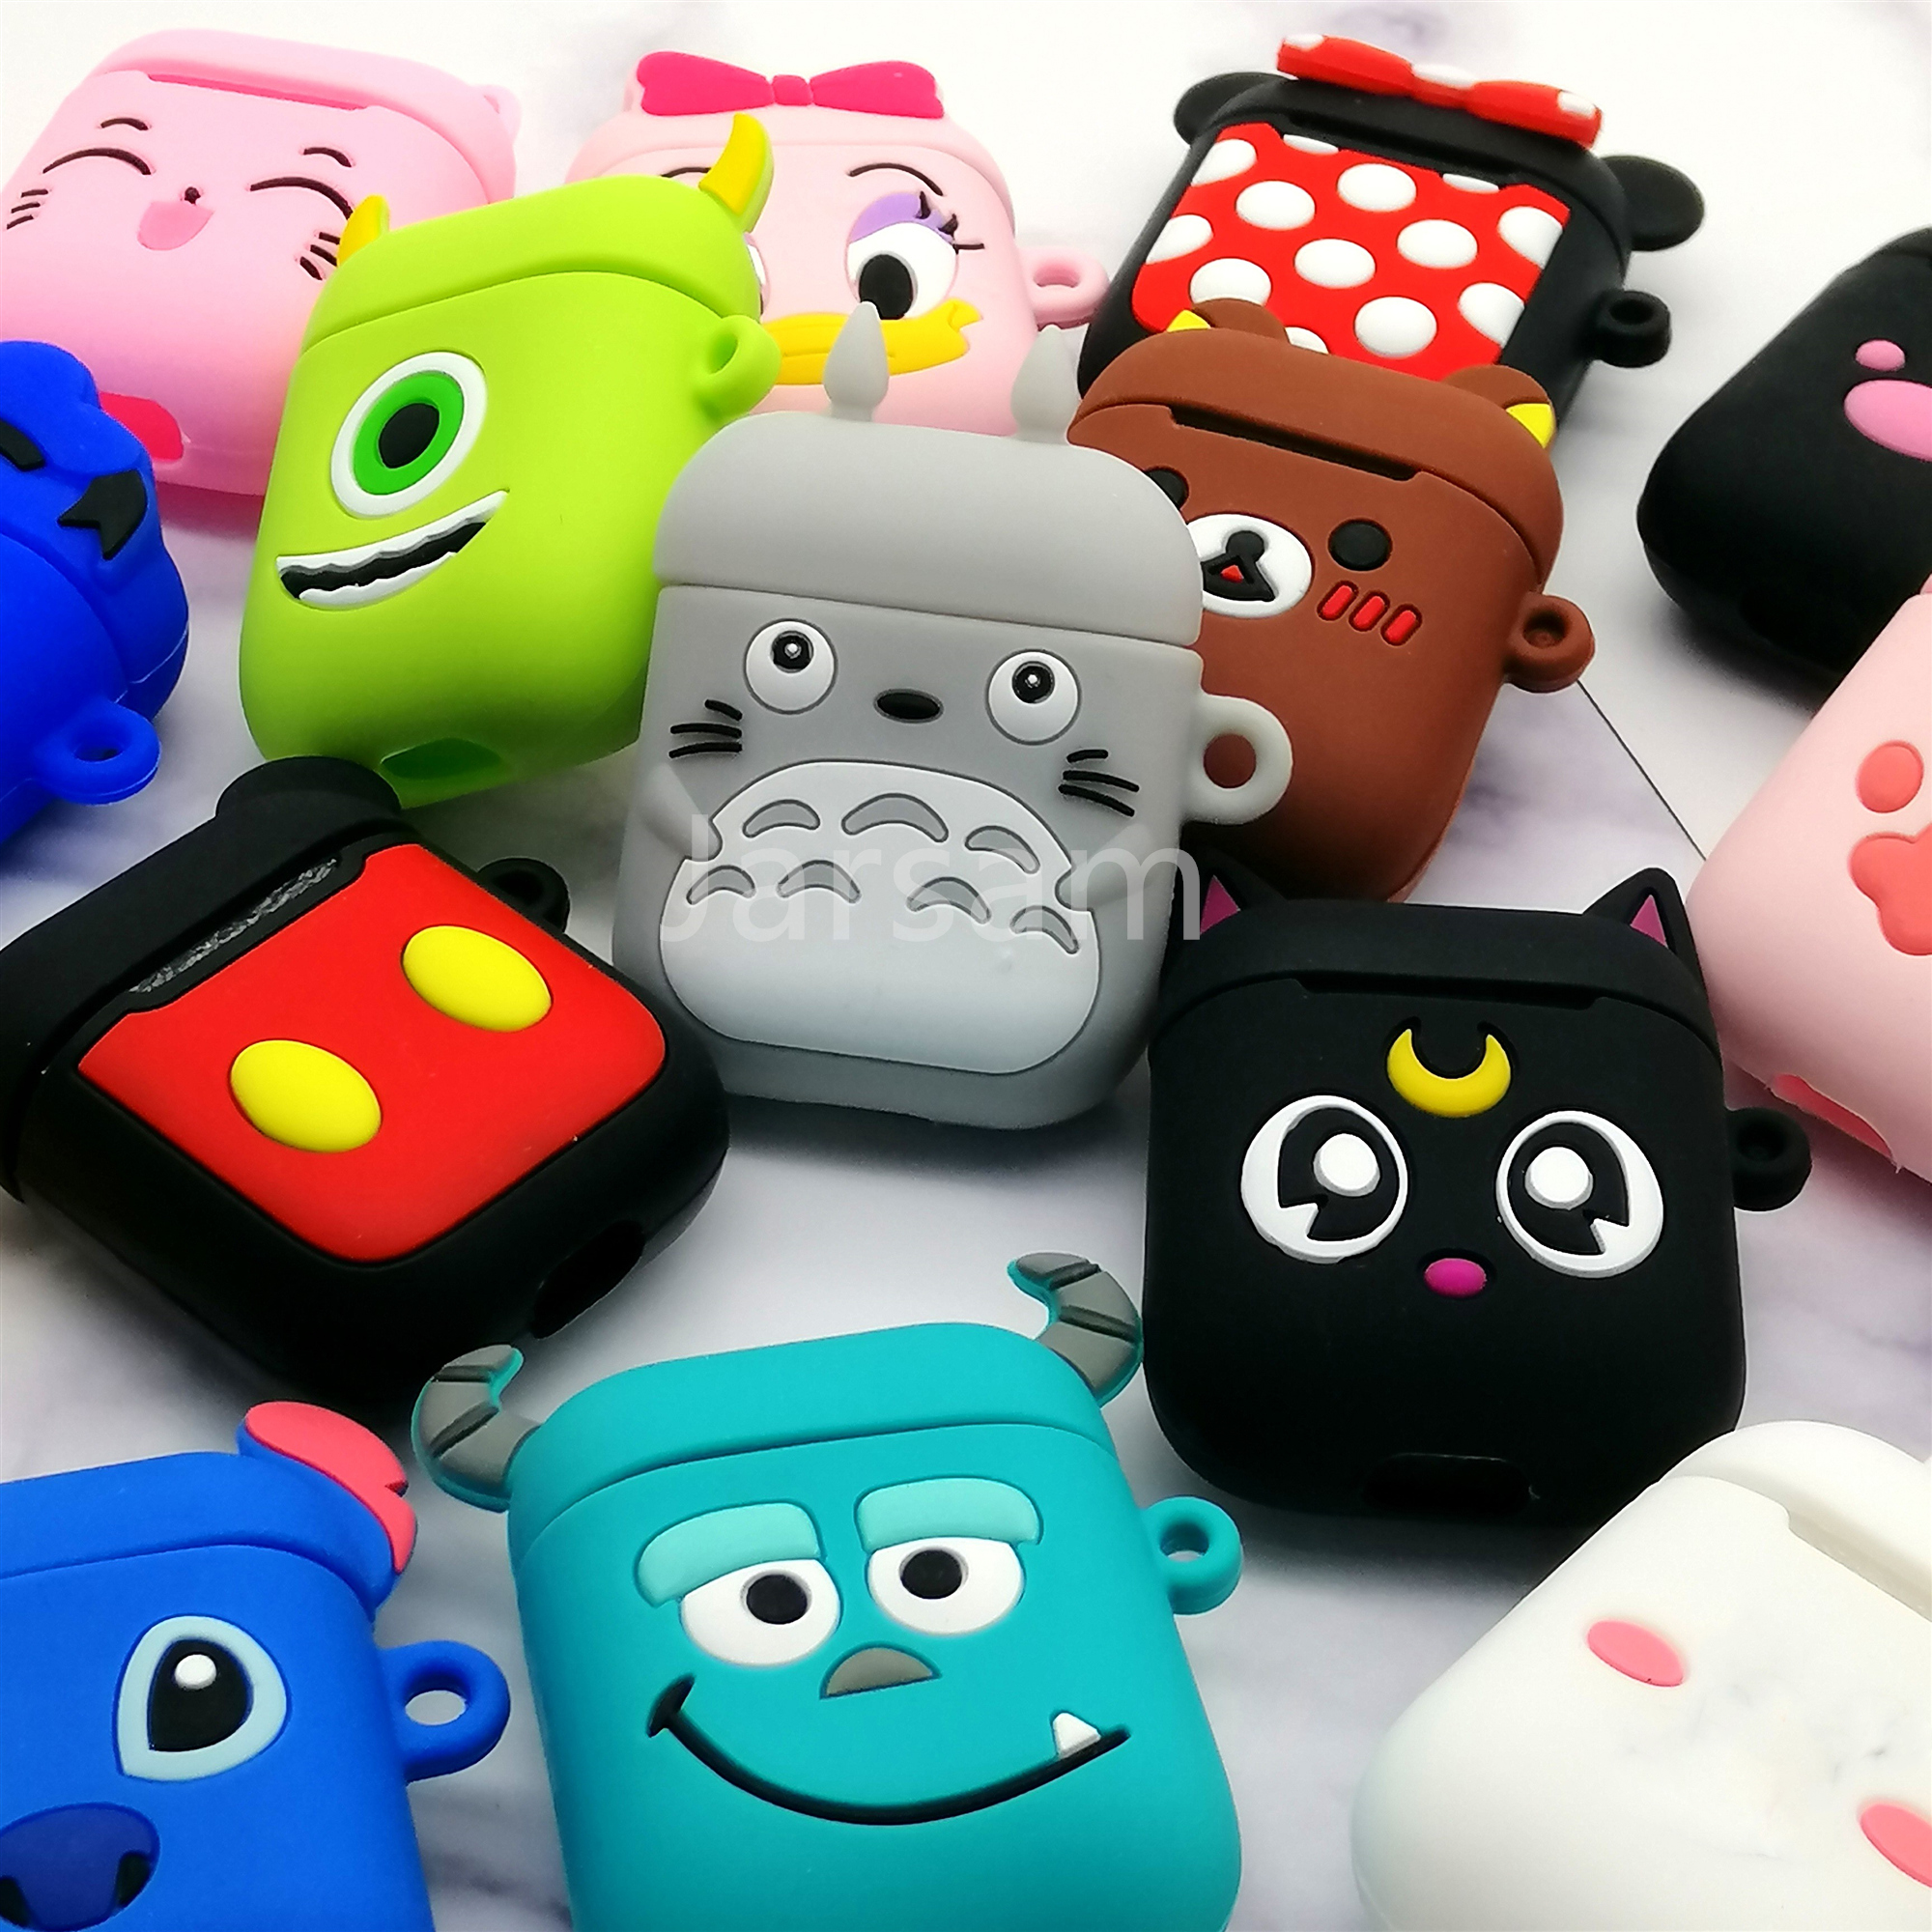 Cute Soft Wireless Earphone <font><b>Case</b></font> For <font><b>Apple</b></font> <font><b>AirPods</b></font> 2 <font><b>Silicone</b></font> Charging Headphones <font><b>Case</b></font> for <font><b>Airpods</b></font> Protective Cover accessories image